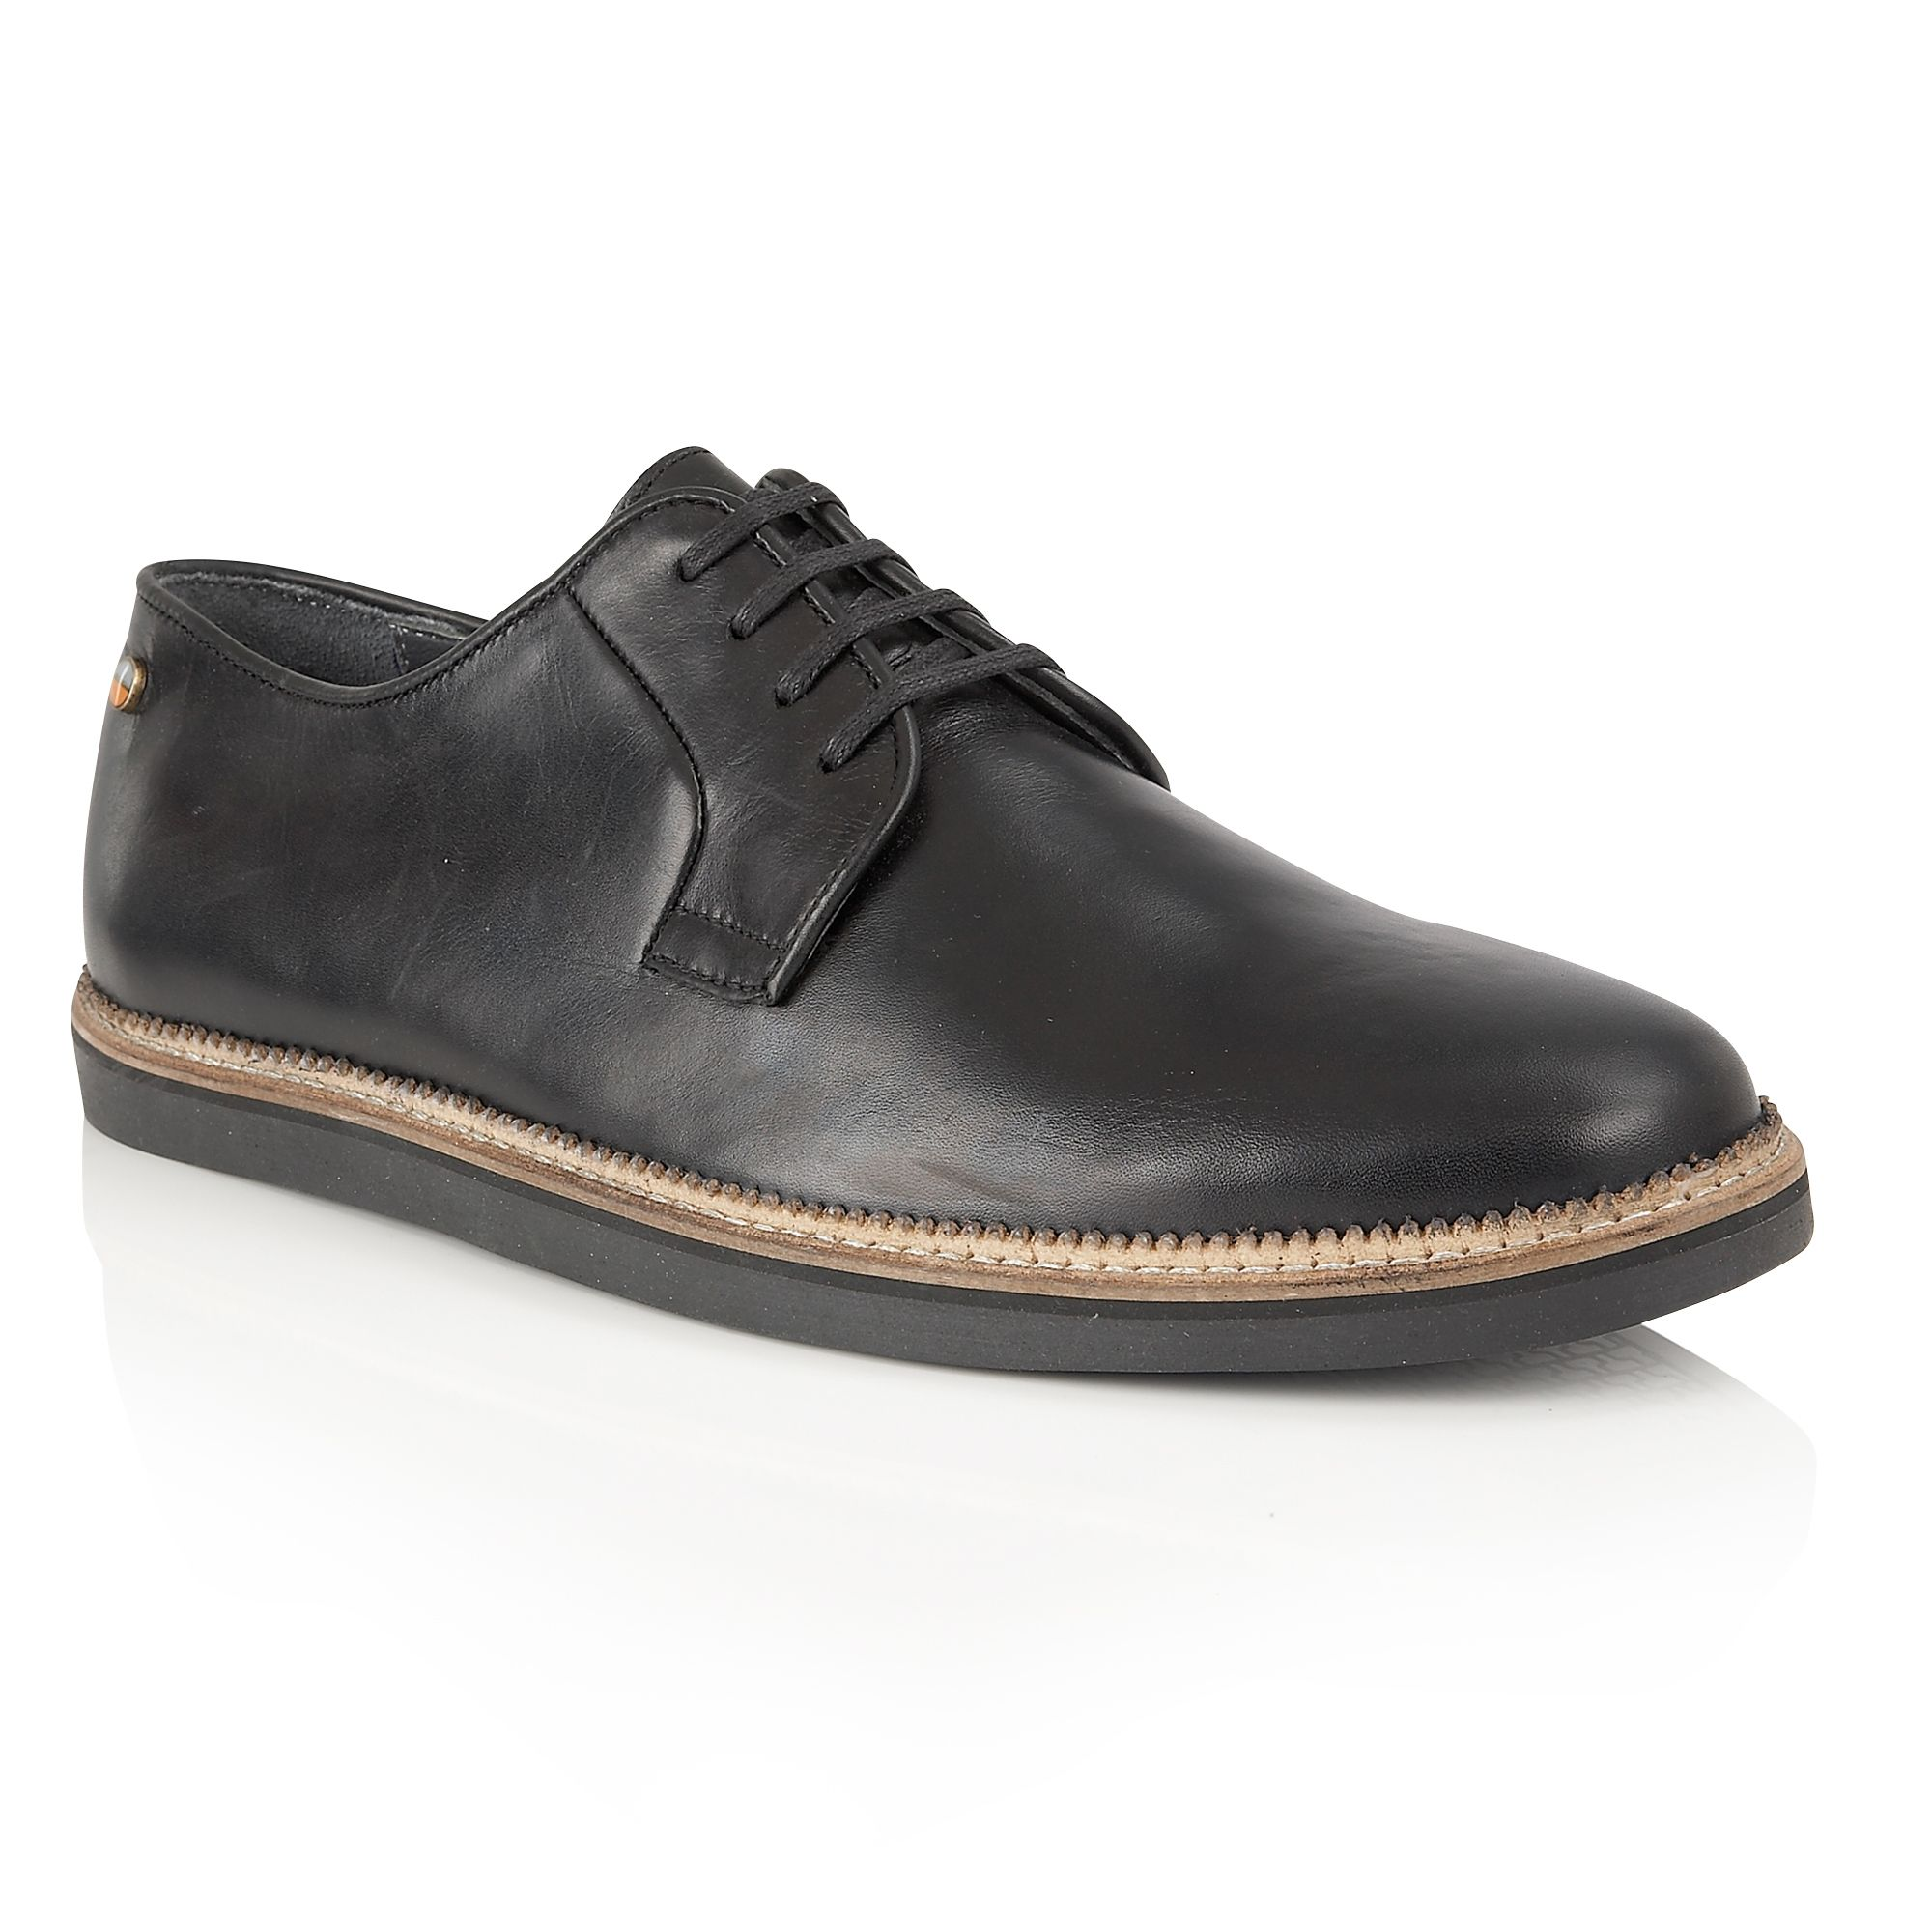 Frank Wright Frank Wright Turpin Mens Shoes, Black